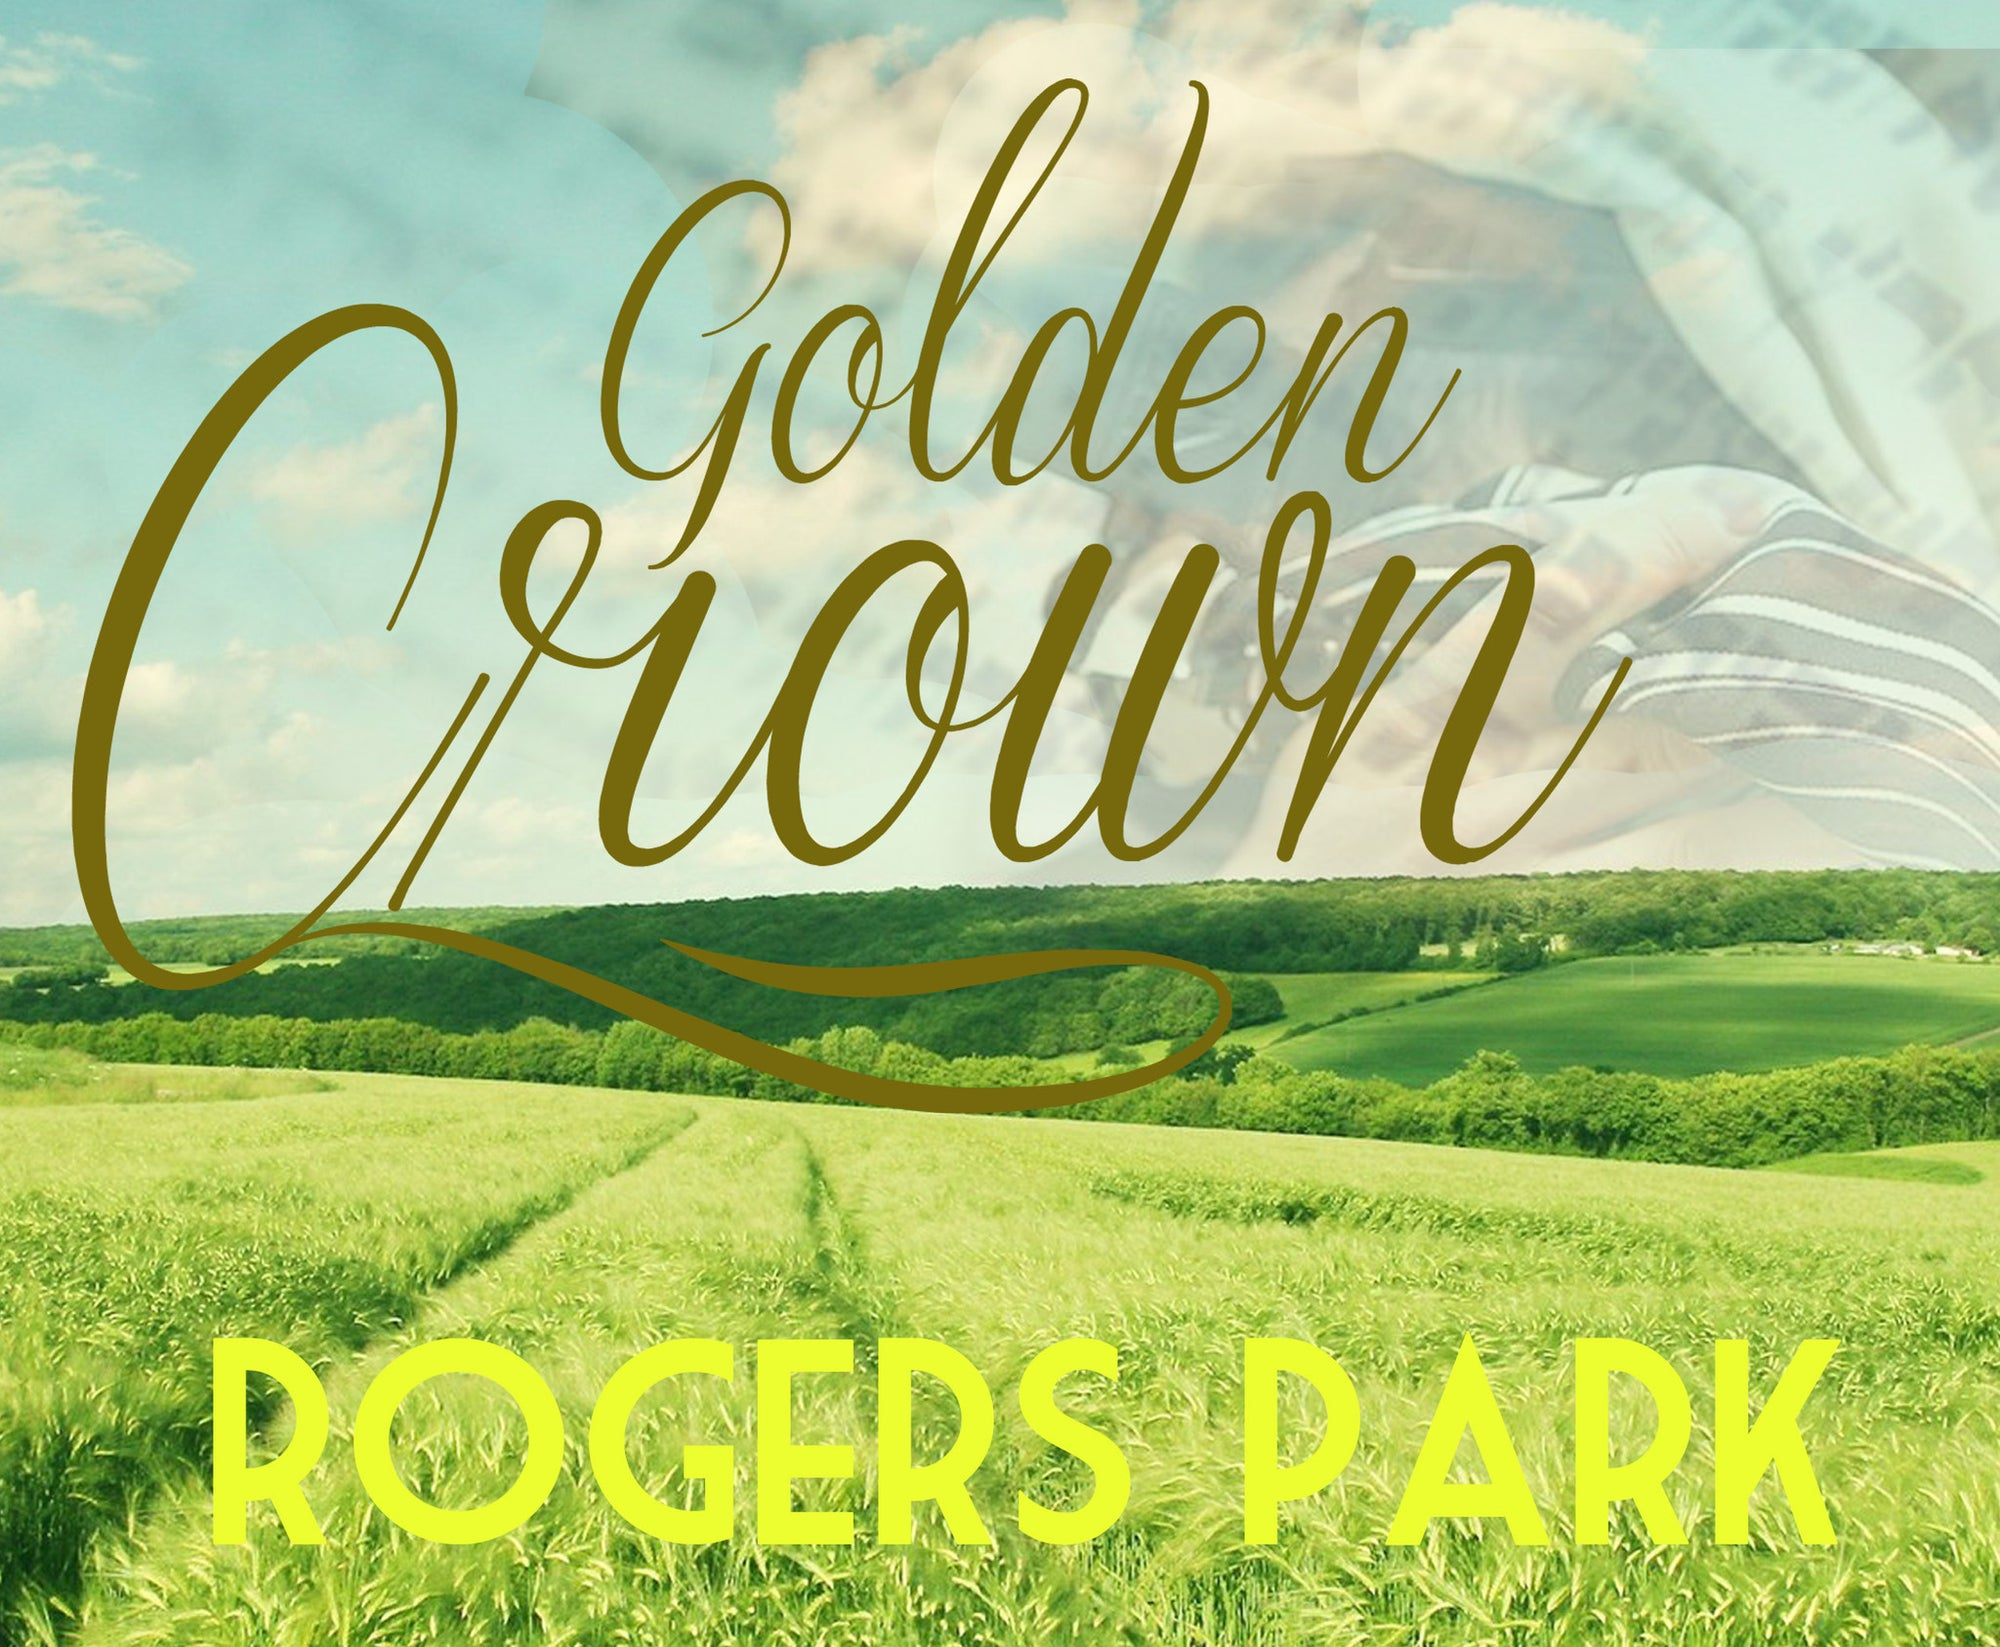 Rogers Park - Golden Crown